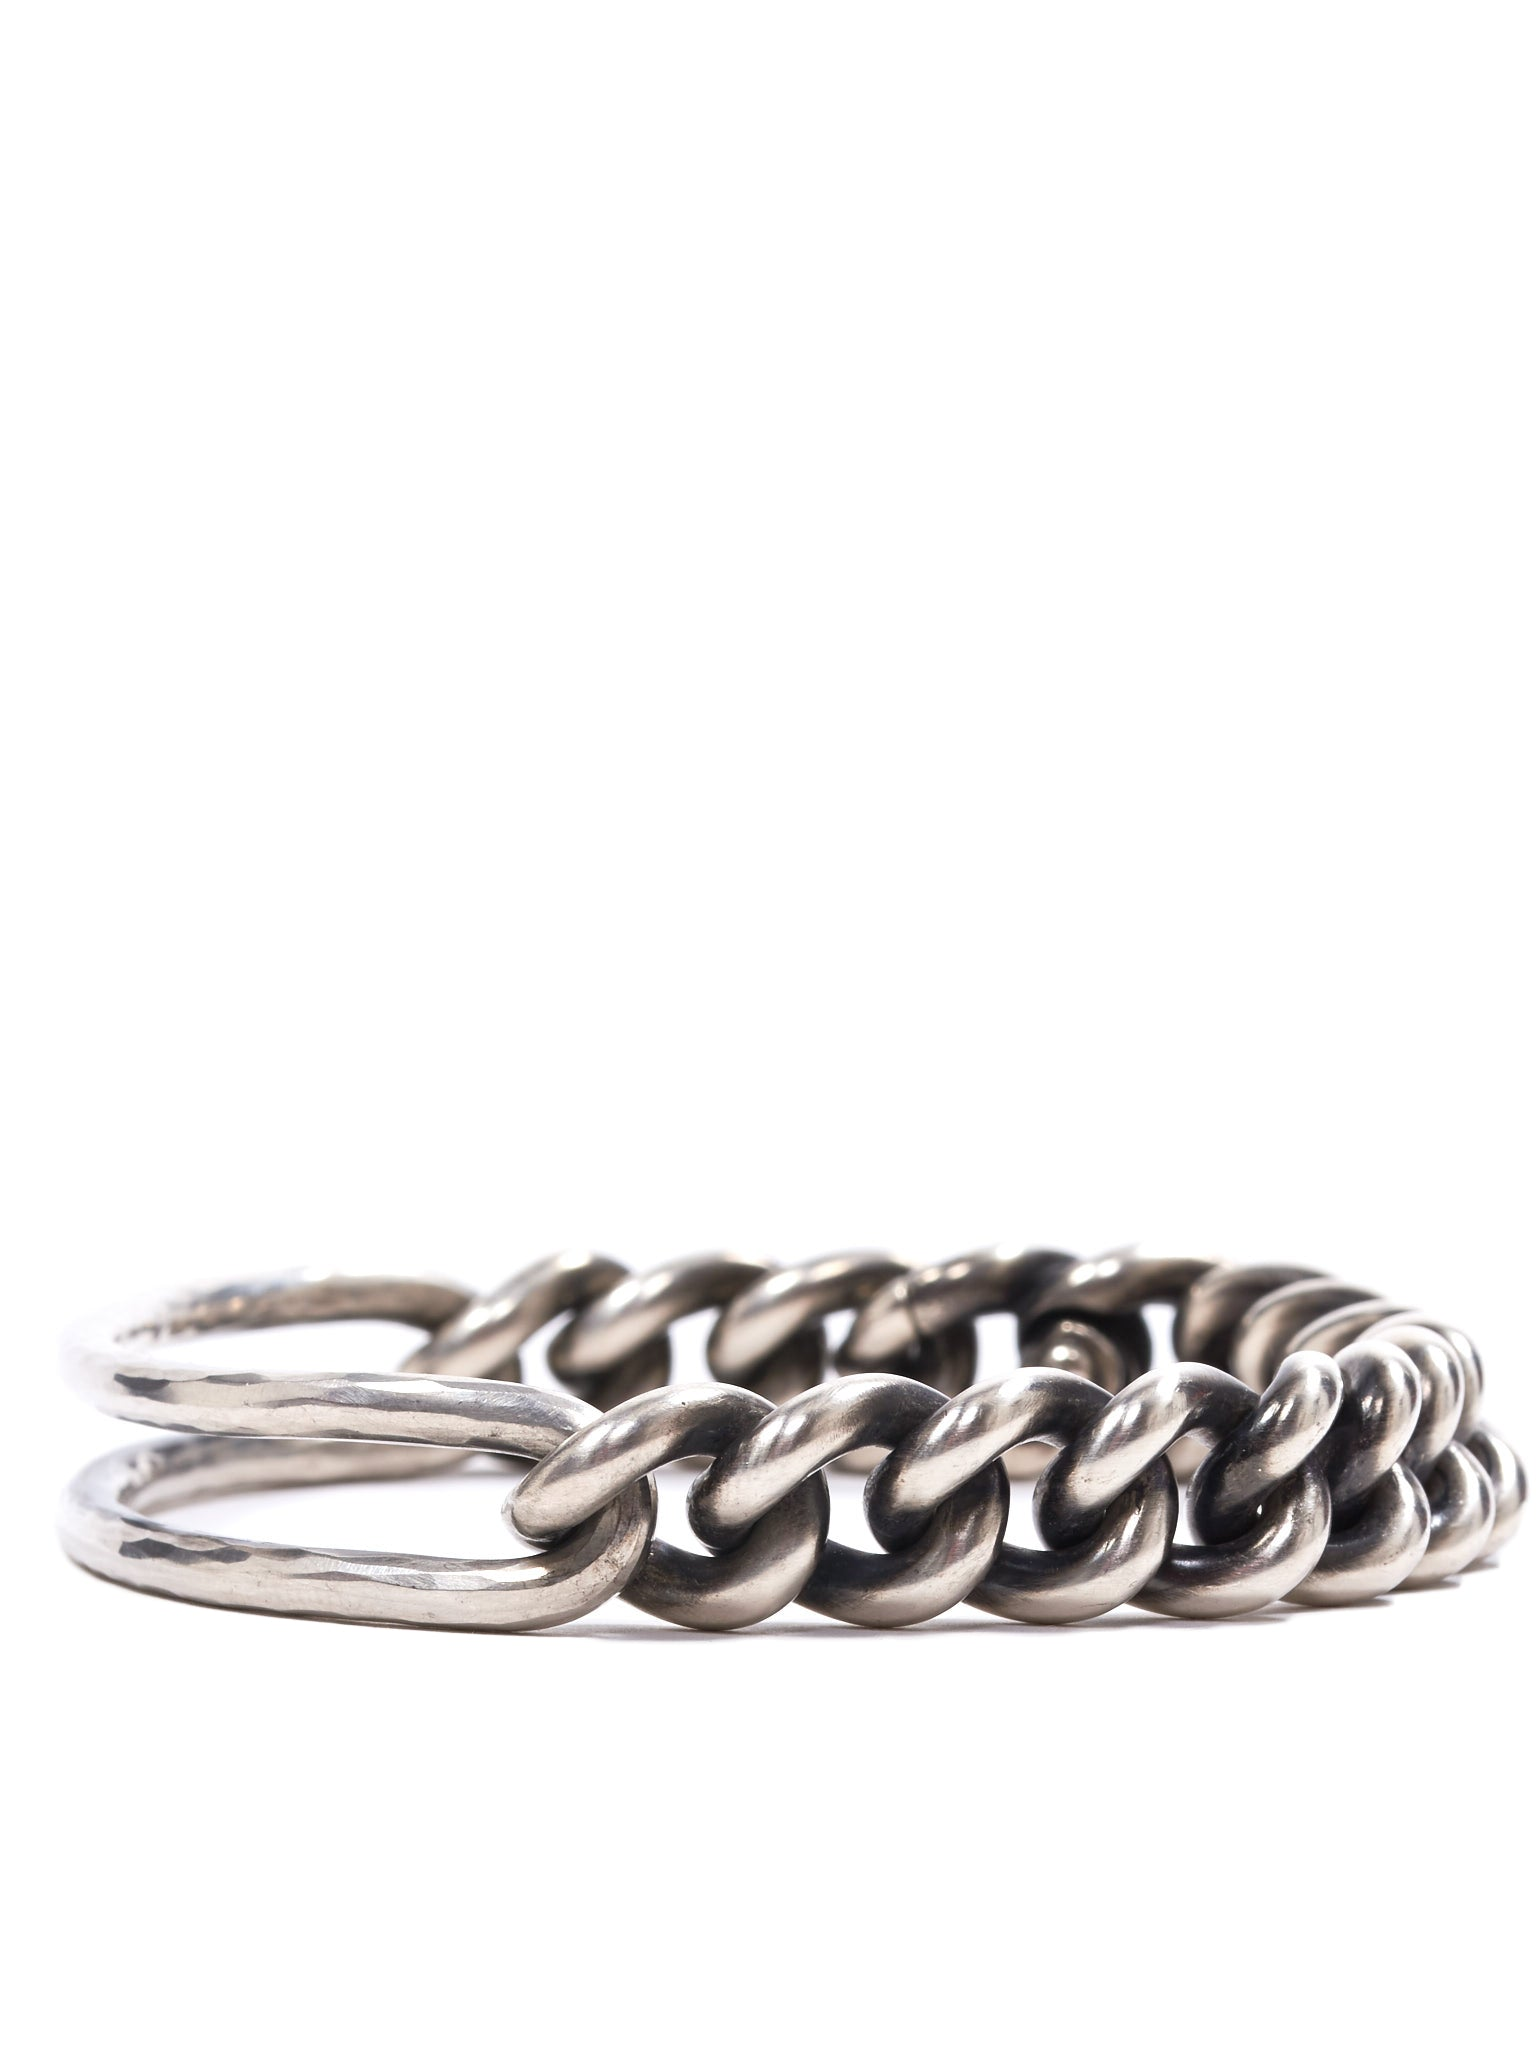 Curb Chain Hammered Bracelet (M2307-CURB-CHAIN-HAMMERED-SIL)